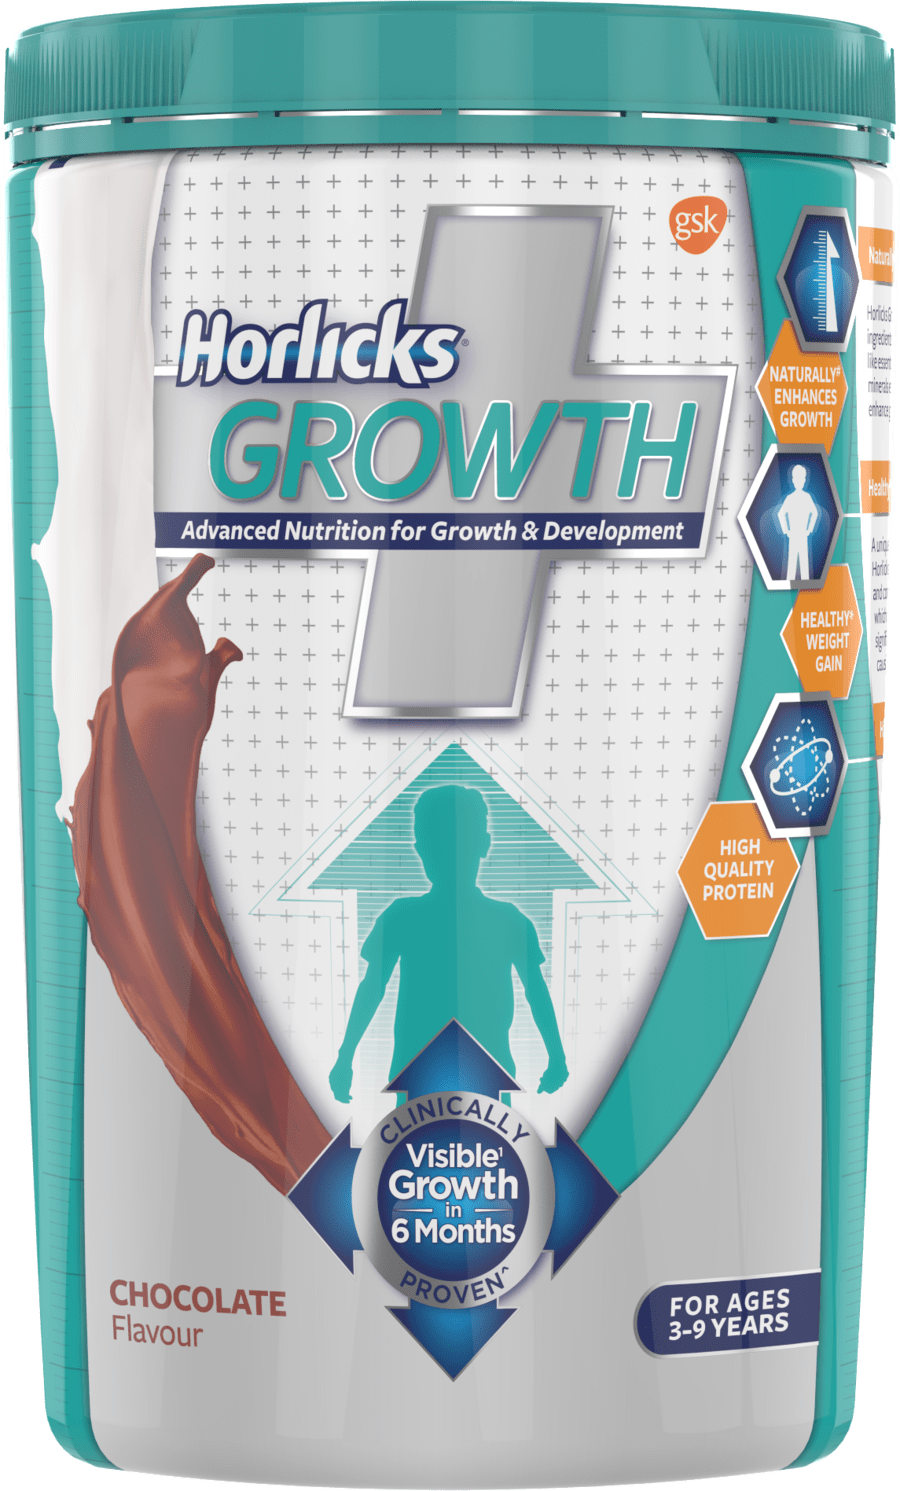 Horlicks Growth Plus – Health & Nutrition Drink (chocolate Flavor) 400gm Pet Jar